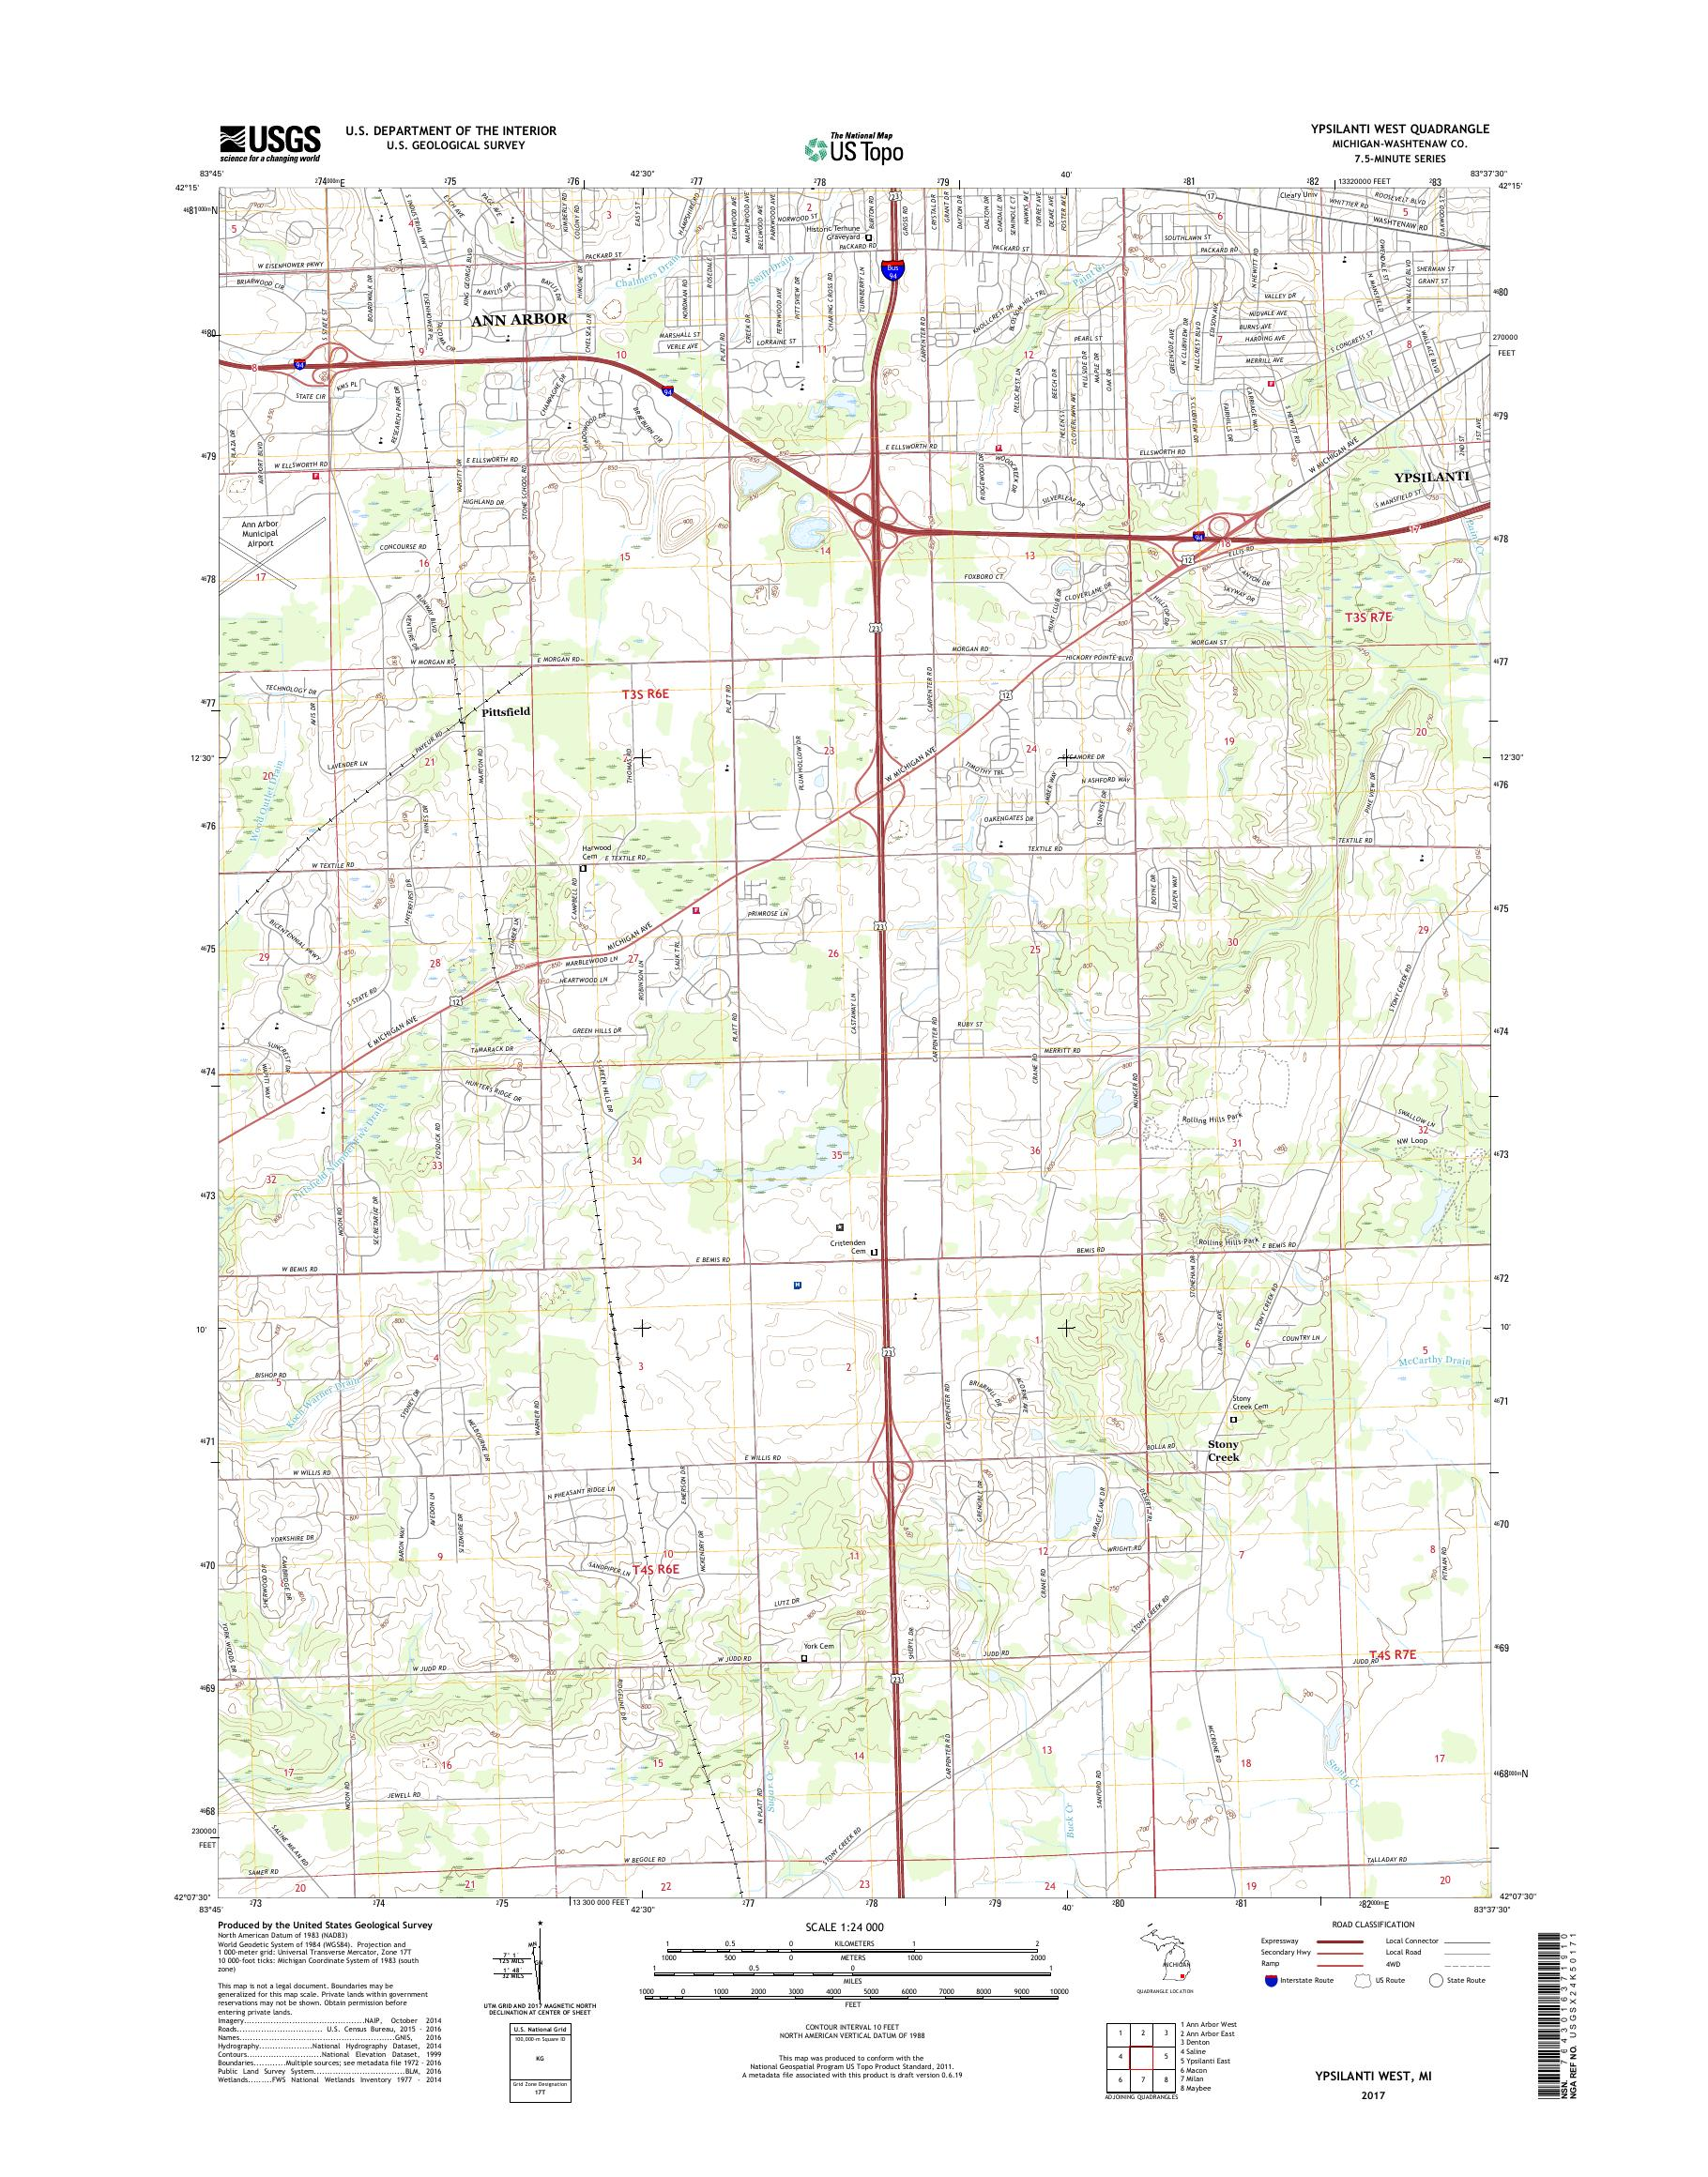 MyTopo Ypsilanti West, Michigan USGS Quad Topo Map on